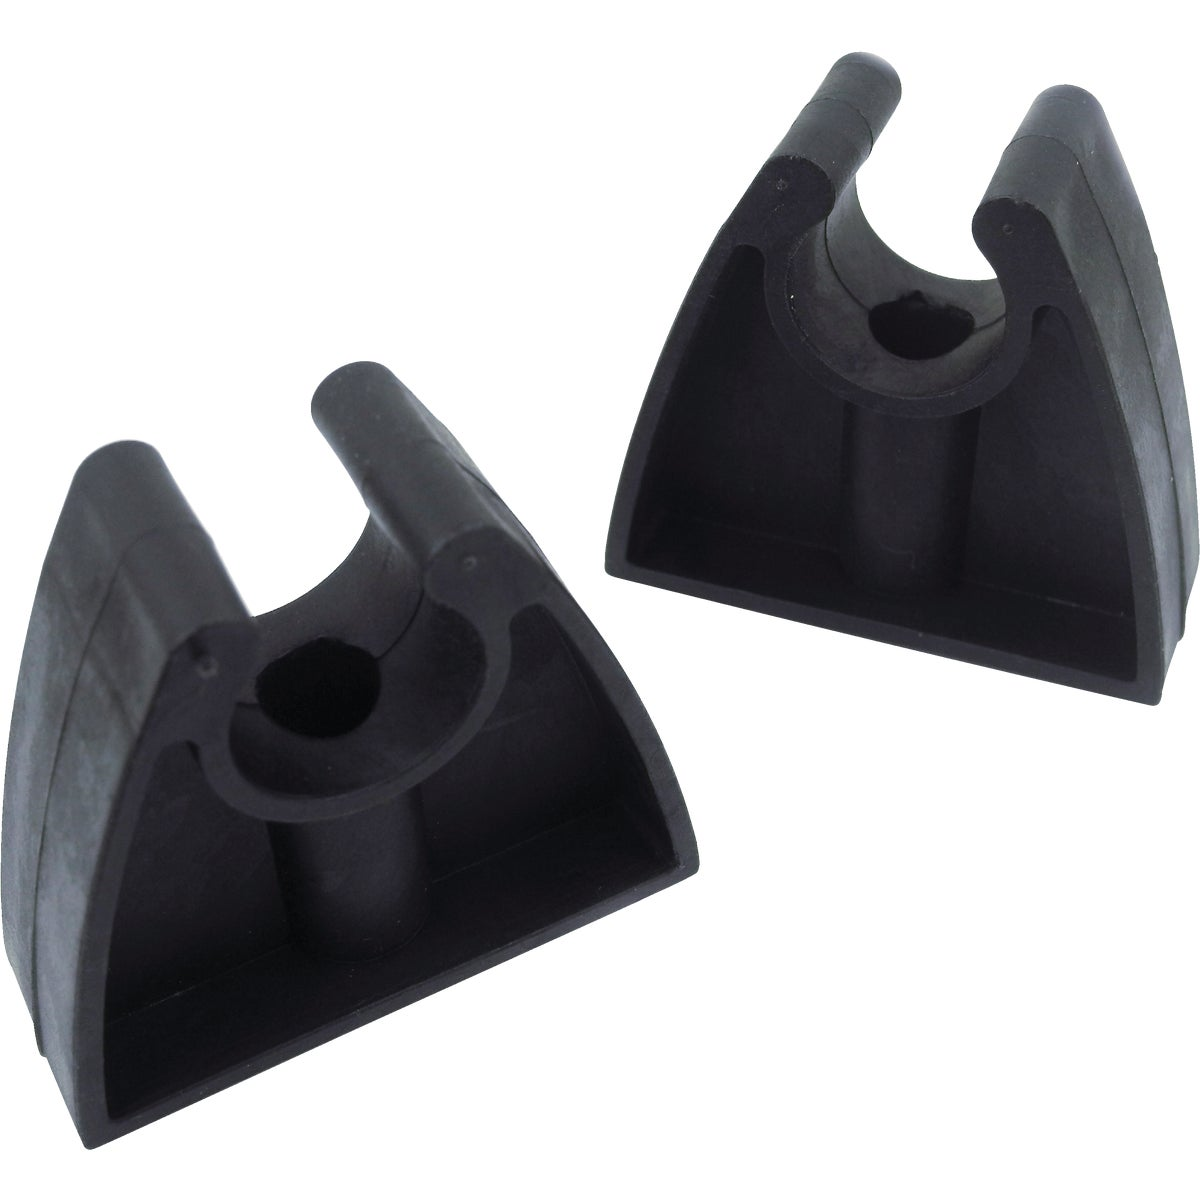 RUBBER STORAGE CLIPS